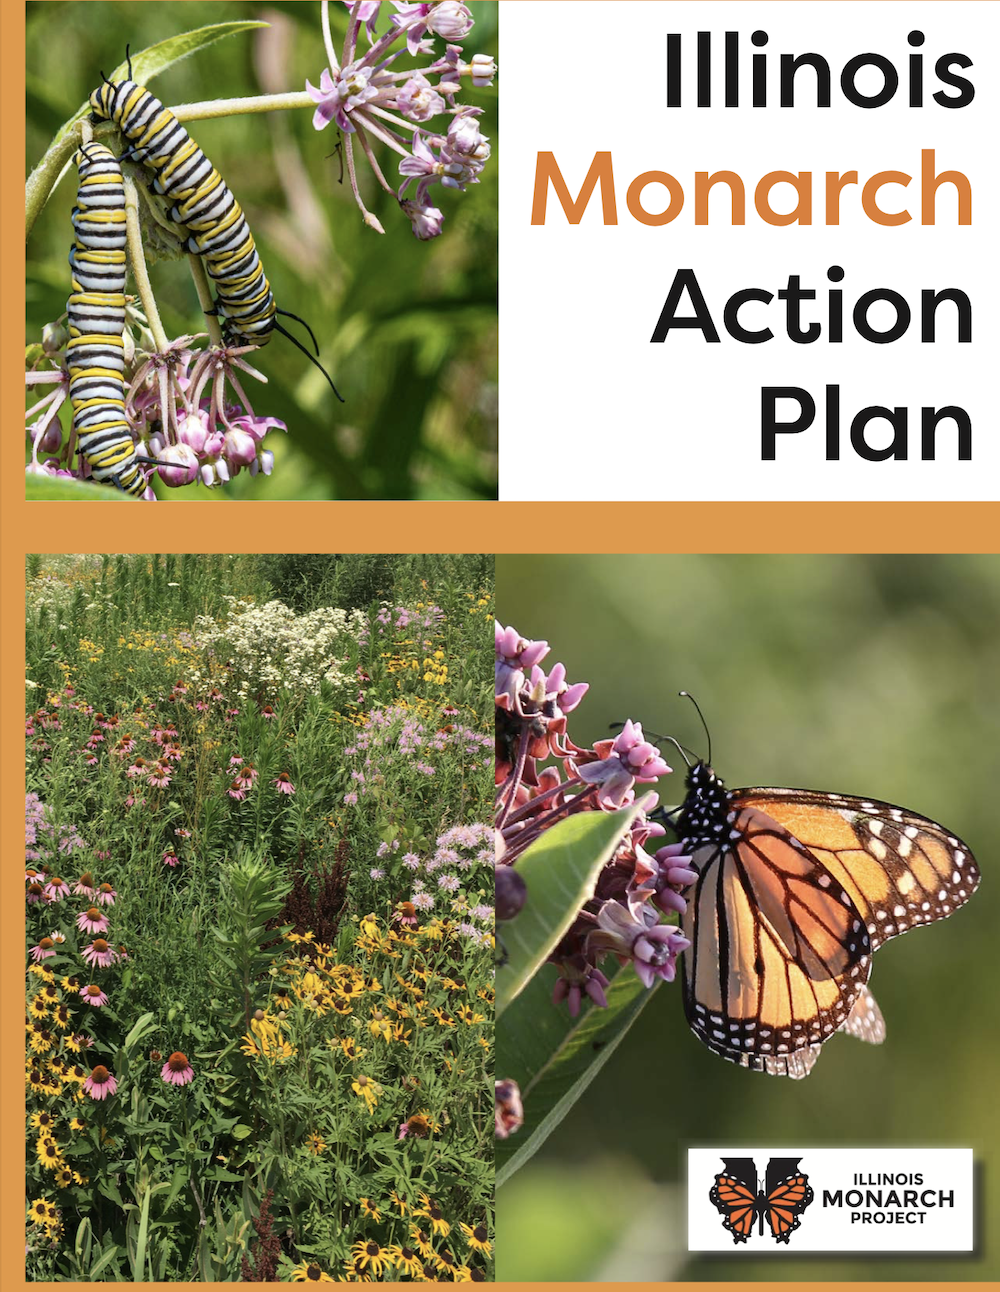 The cover of the Illinois Monarch Action Plan publication. It has a photo of two monarch caterpillars eating a milkweed plant. It also has a photos of prairie flowers and a photo of a monarch sipping nectar on a milkweed plant.